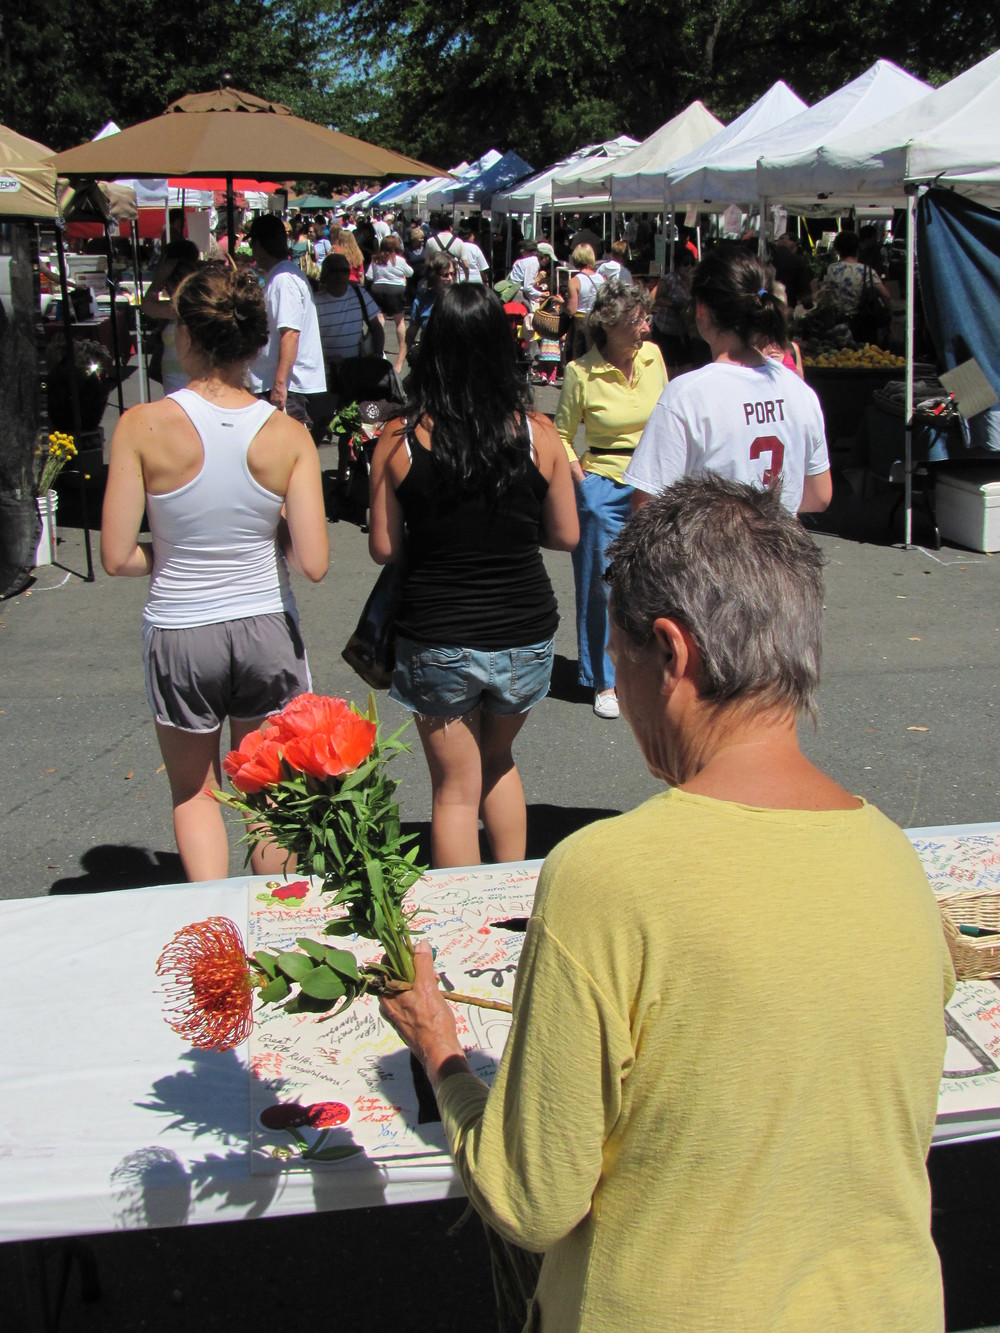 Diablo Valley Farmers' Market birthday: 5 years of Saturday farmers markets in Walnut Creek.